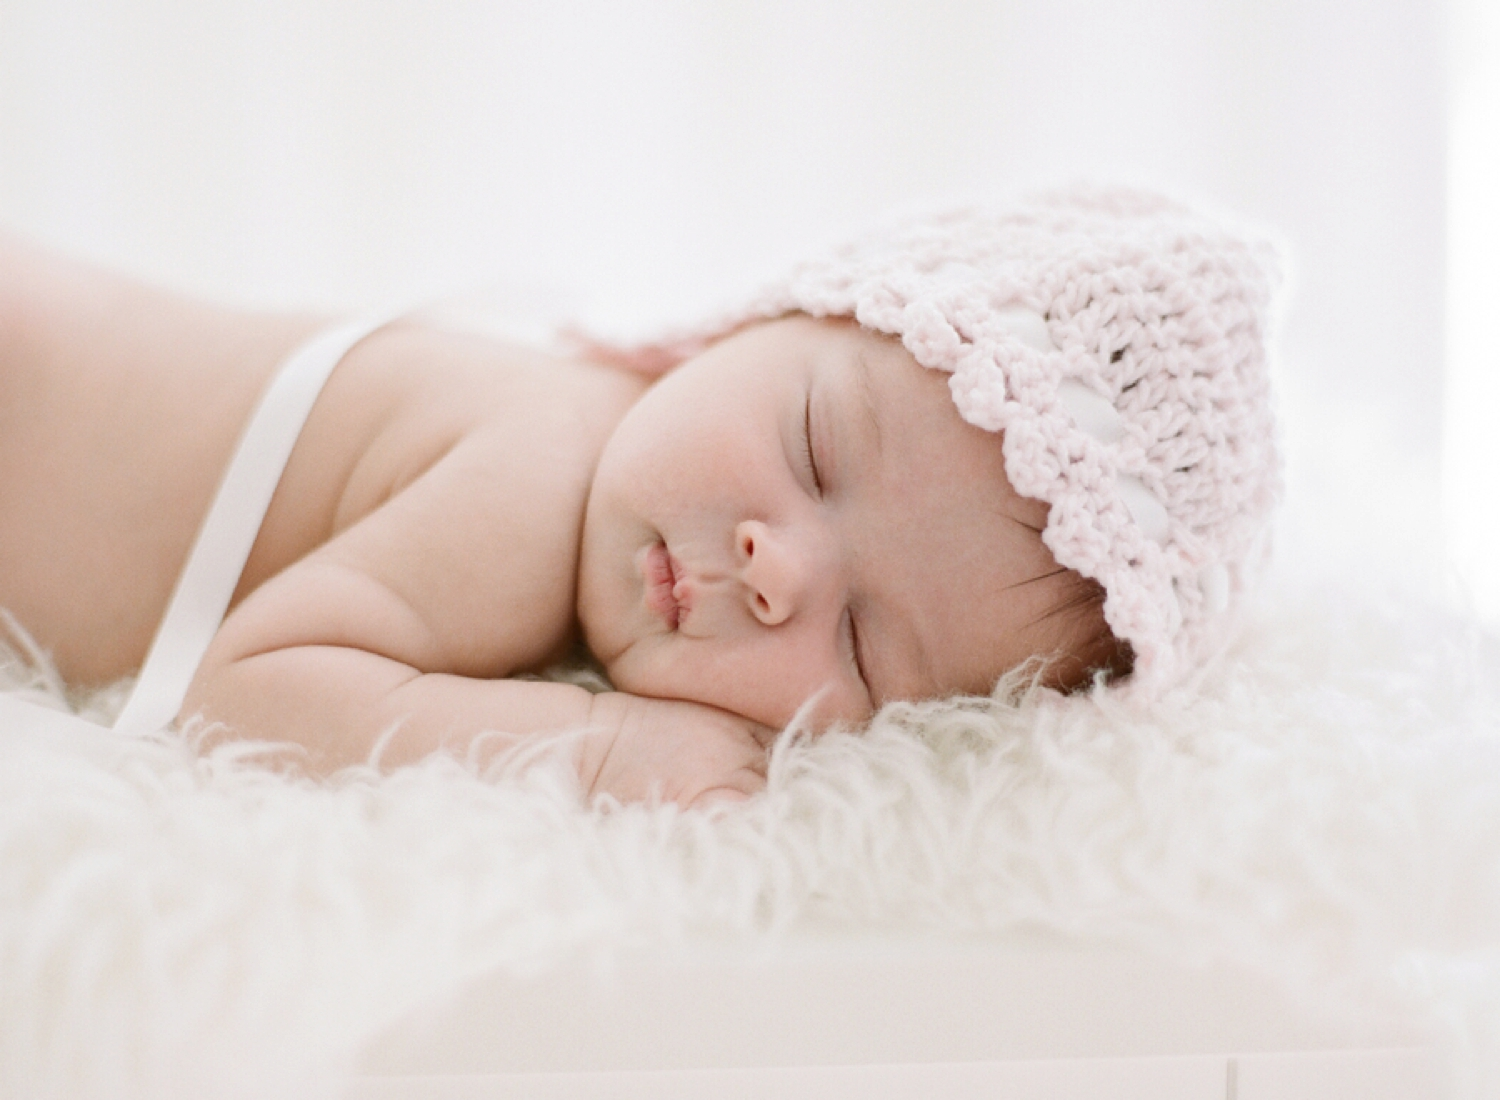 fine art newborn and family photographer in washington dc